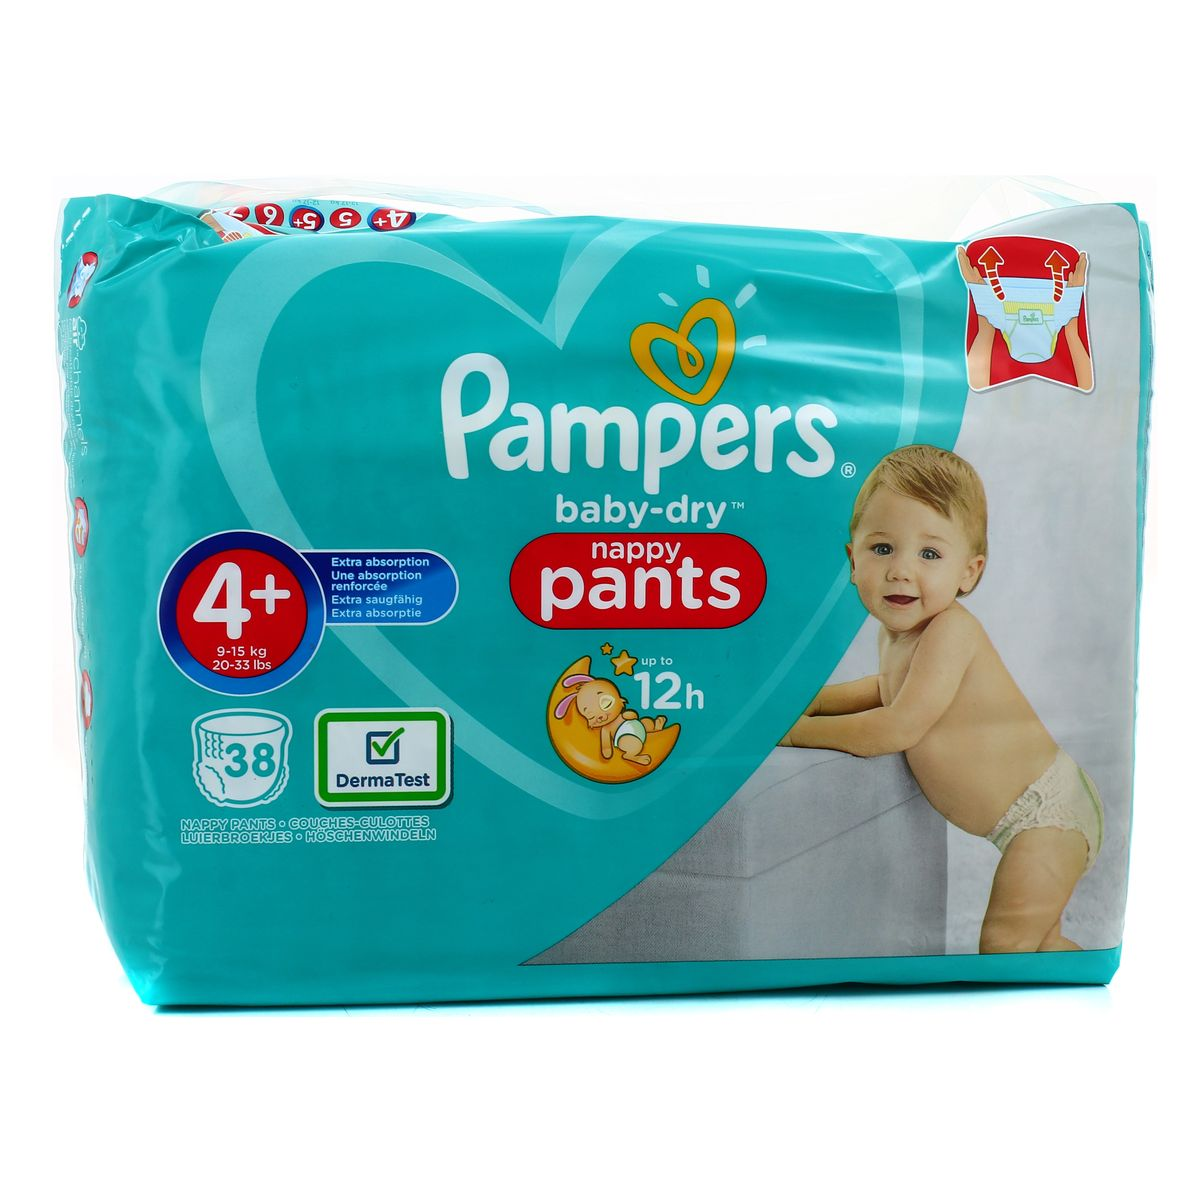 Pampers Pants Geant T4+ X38